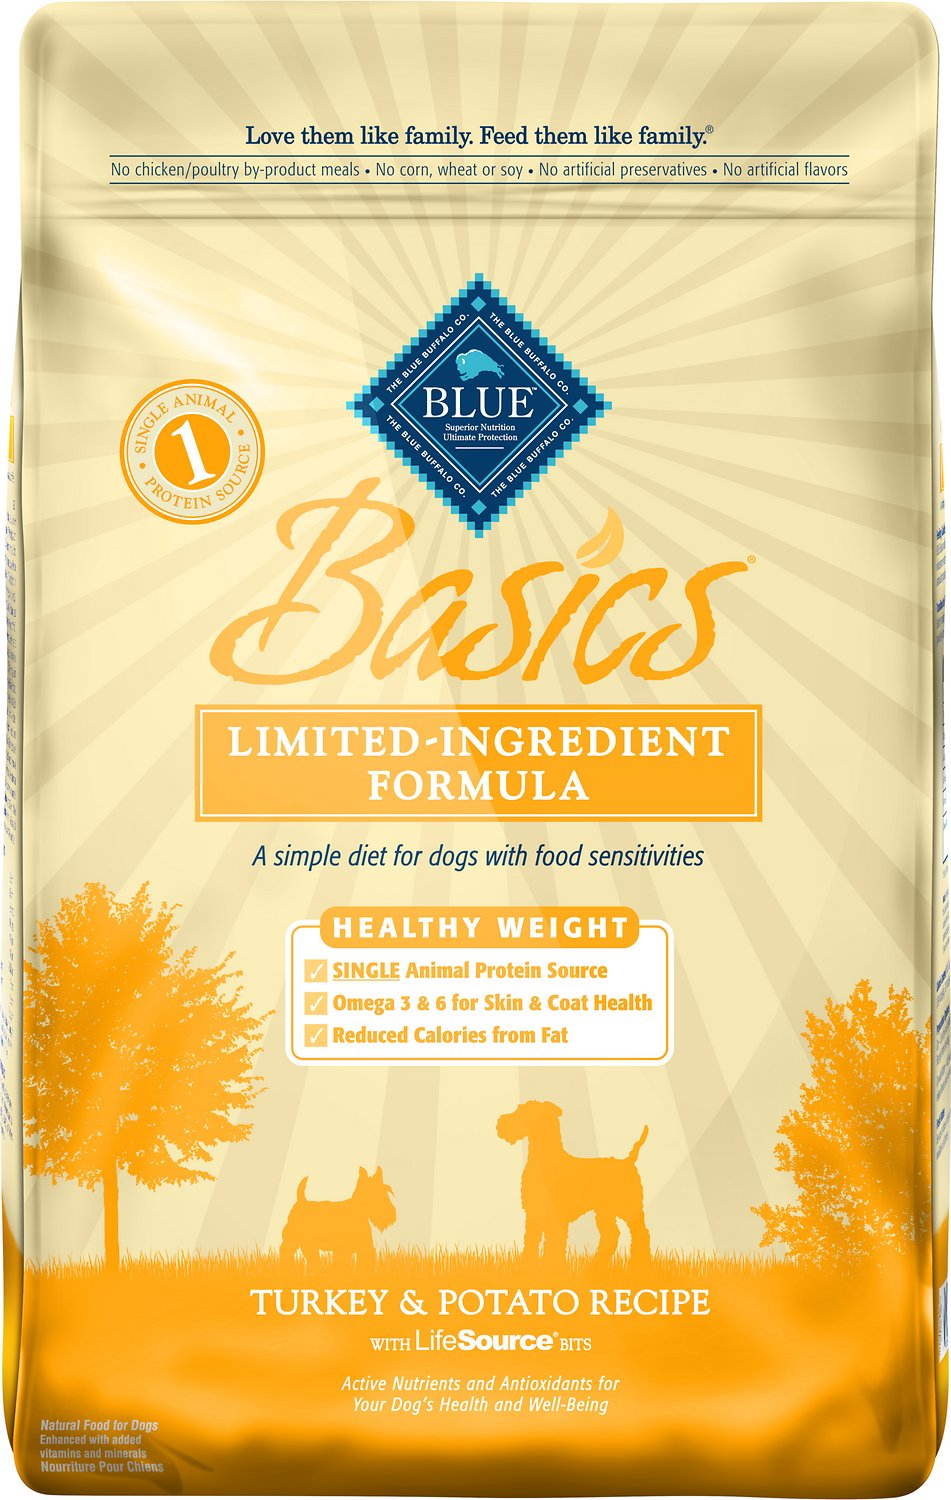 Blue Buffalo Basics Healthy Weight Turkey & Potato Recipe Adult Dry Dog Food Image